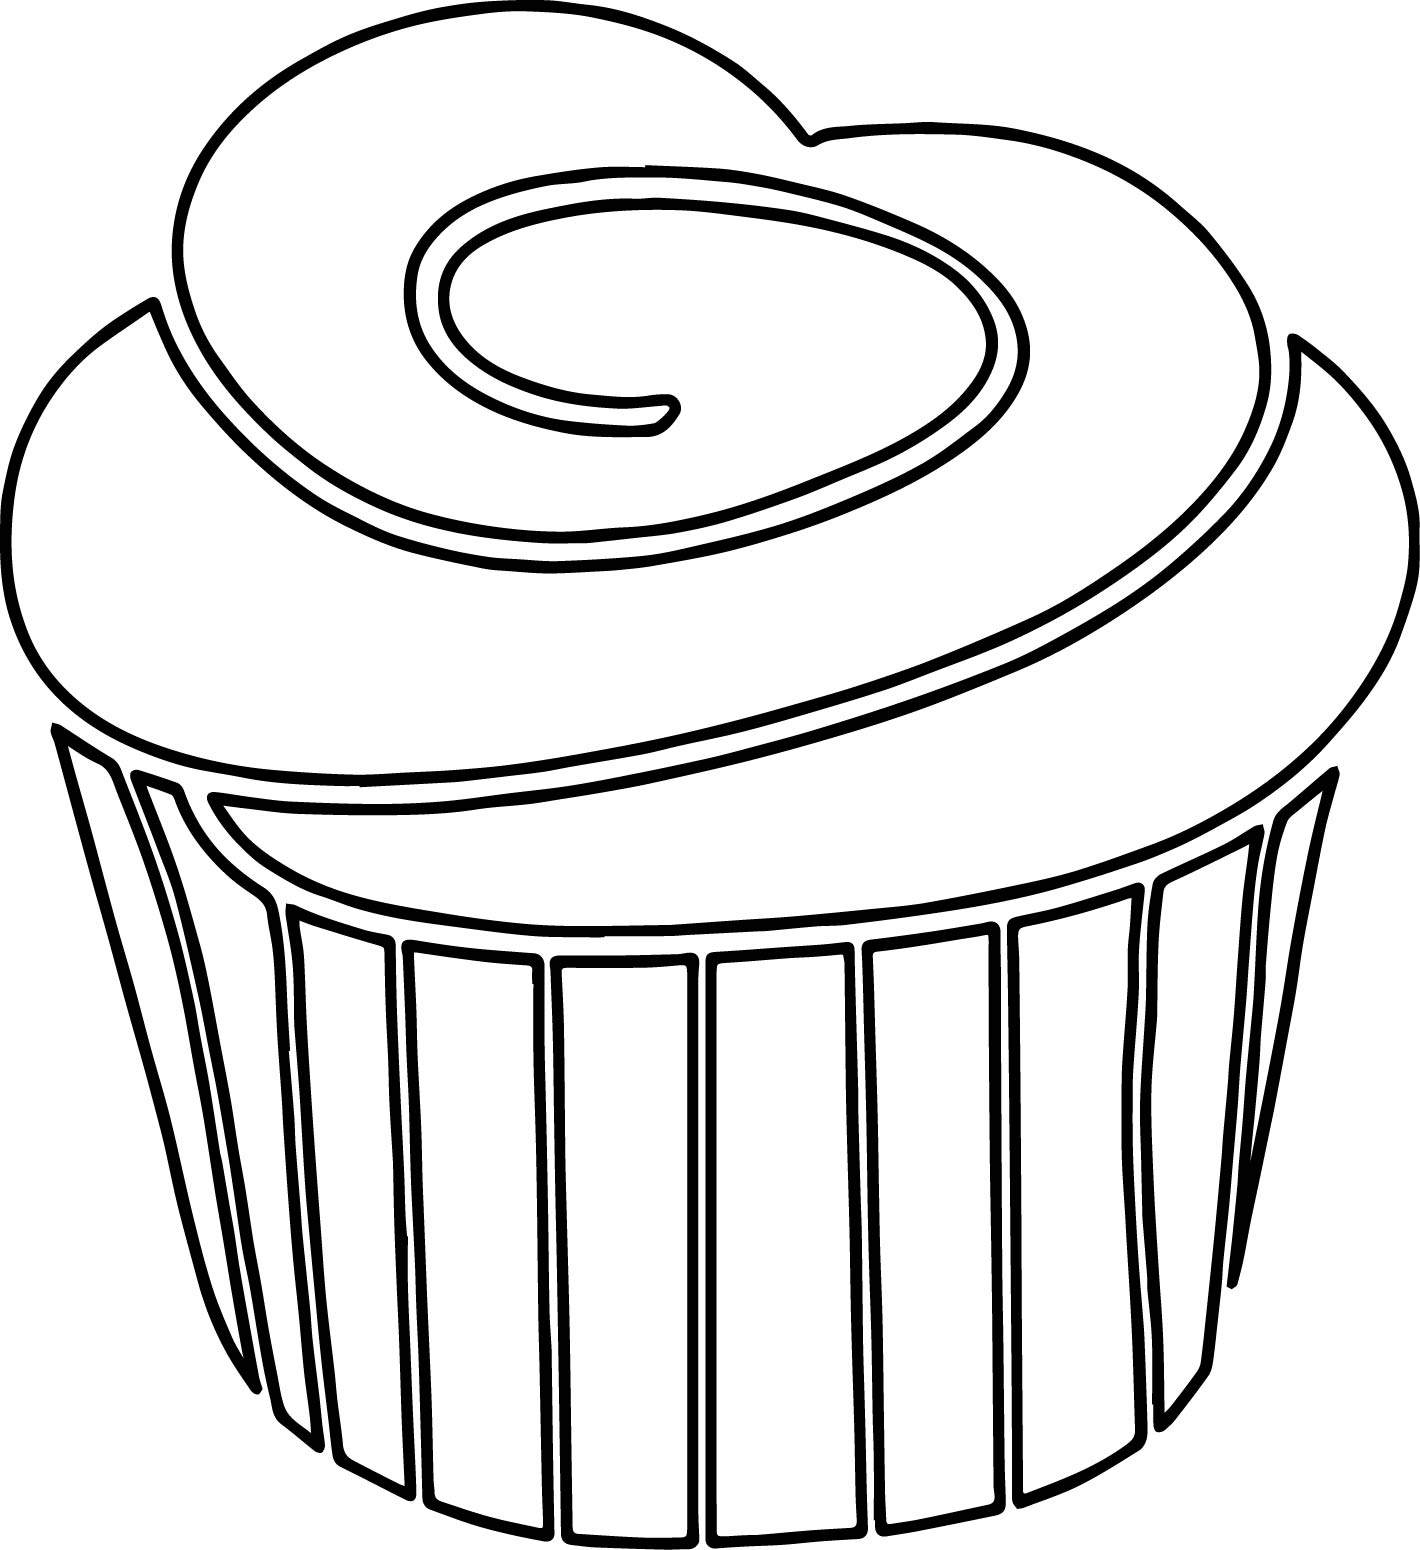 Cupcake Outline